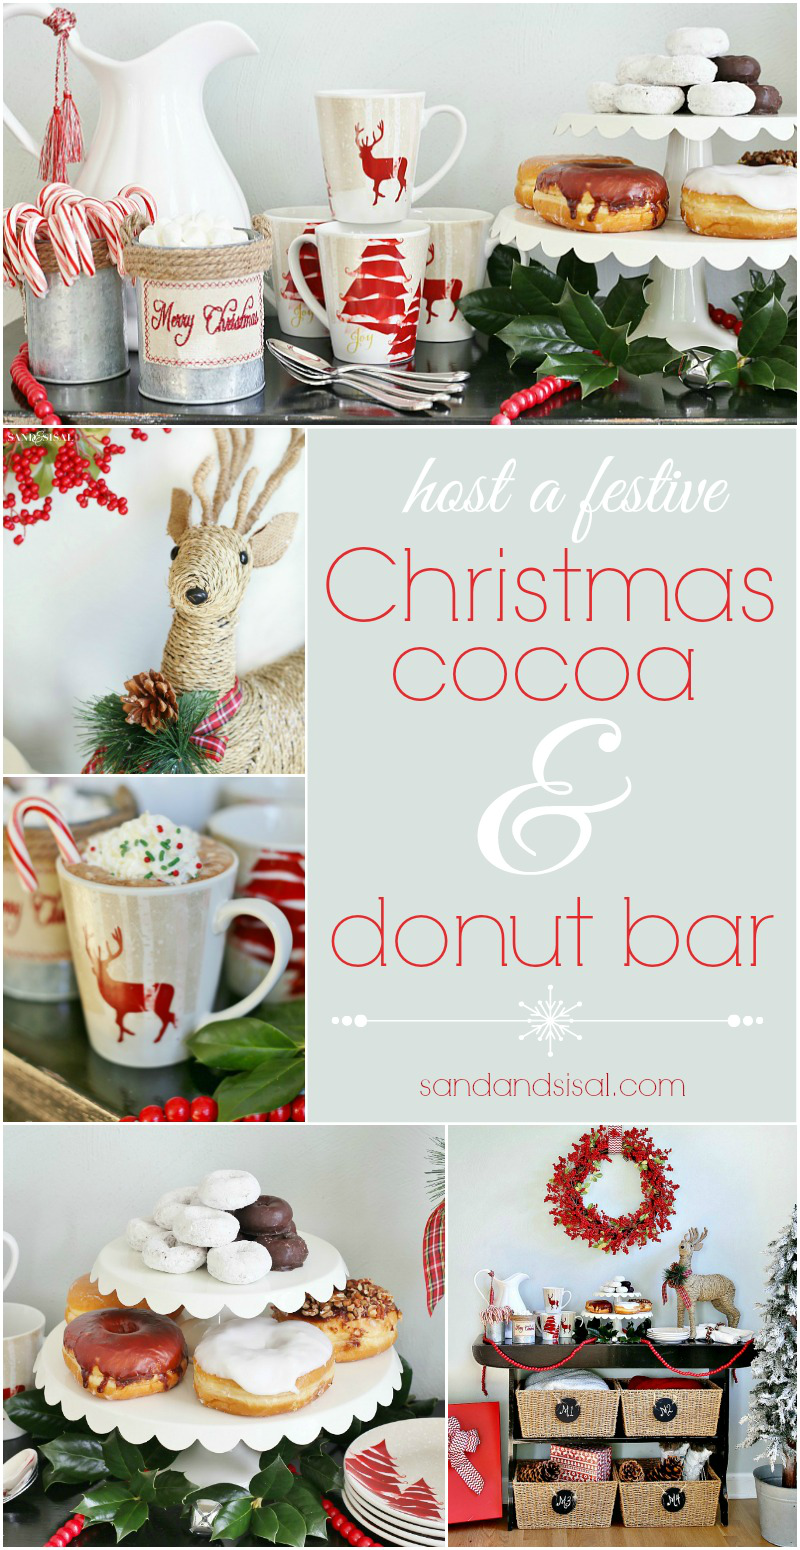 Host a festive Christmas Cocoa + Donut Bar